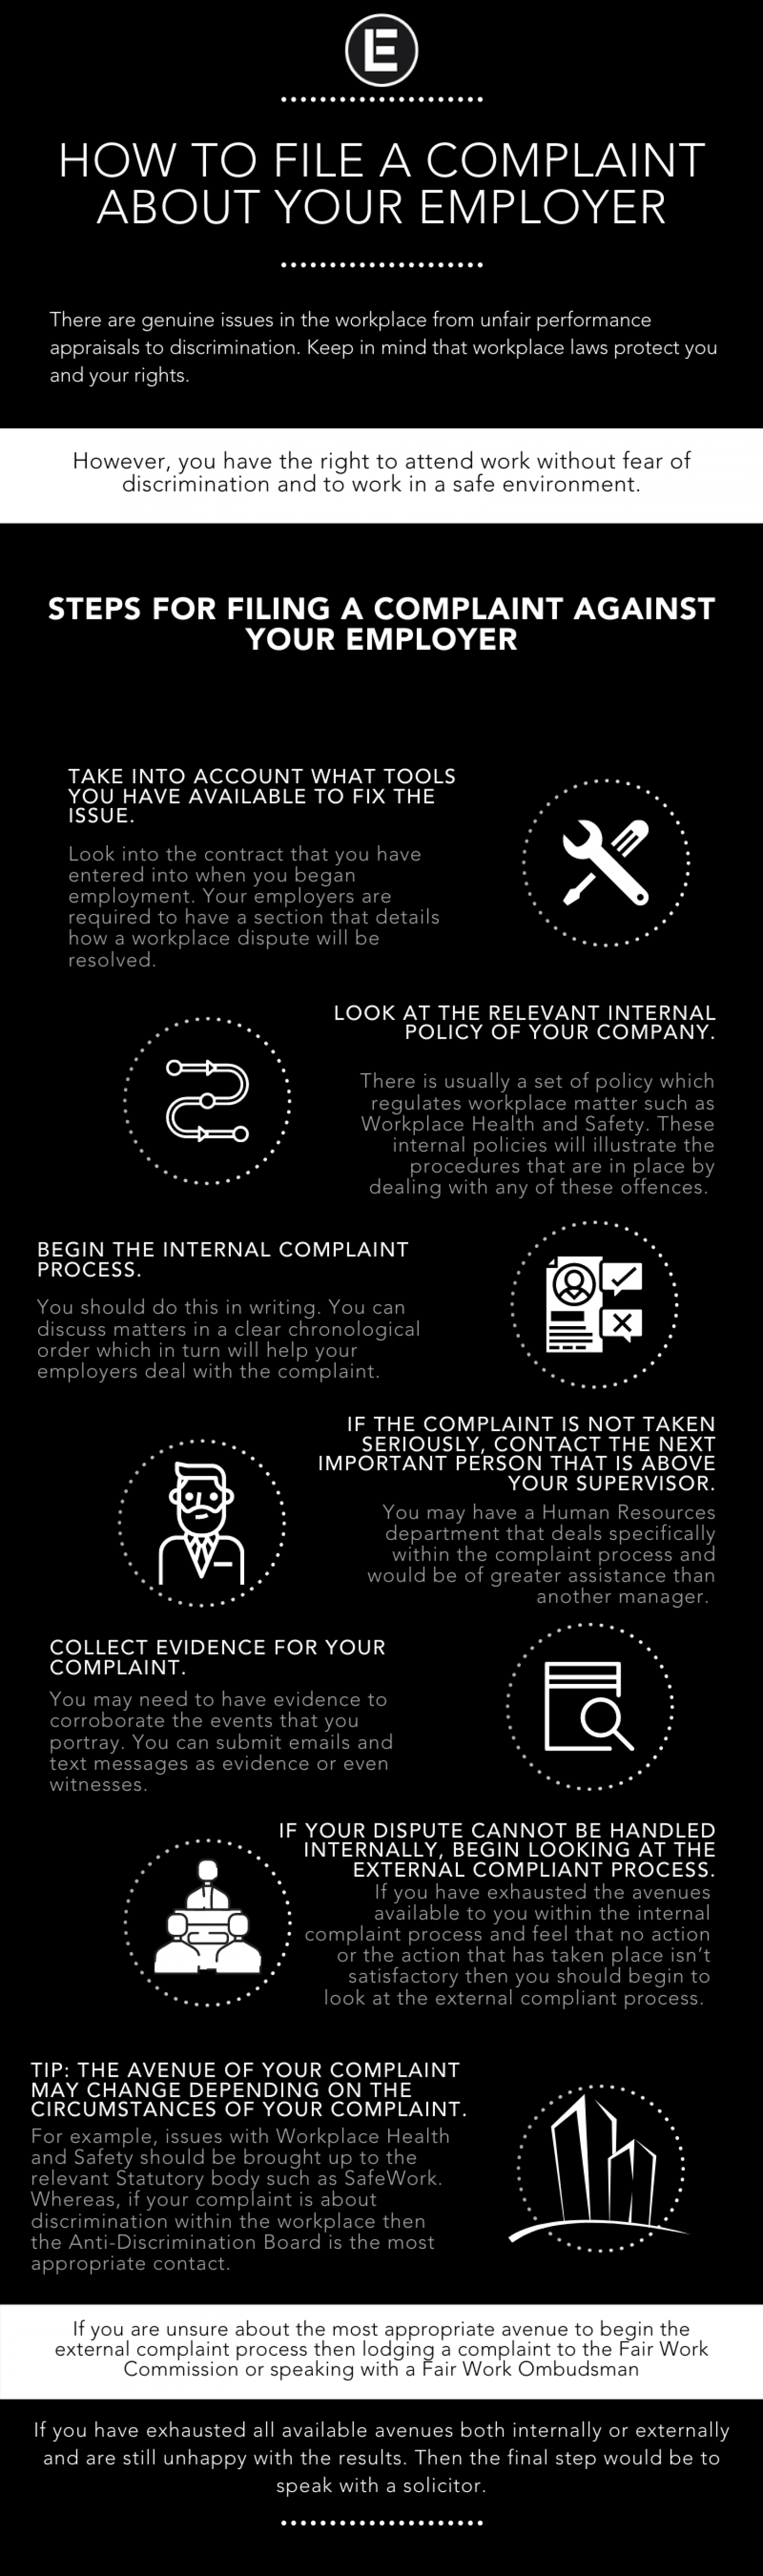 How to File a Complaint About Your Employer Infographic